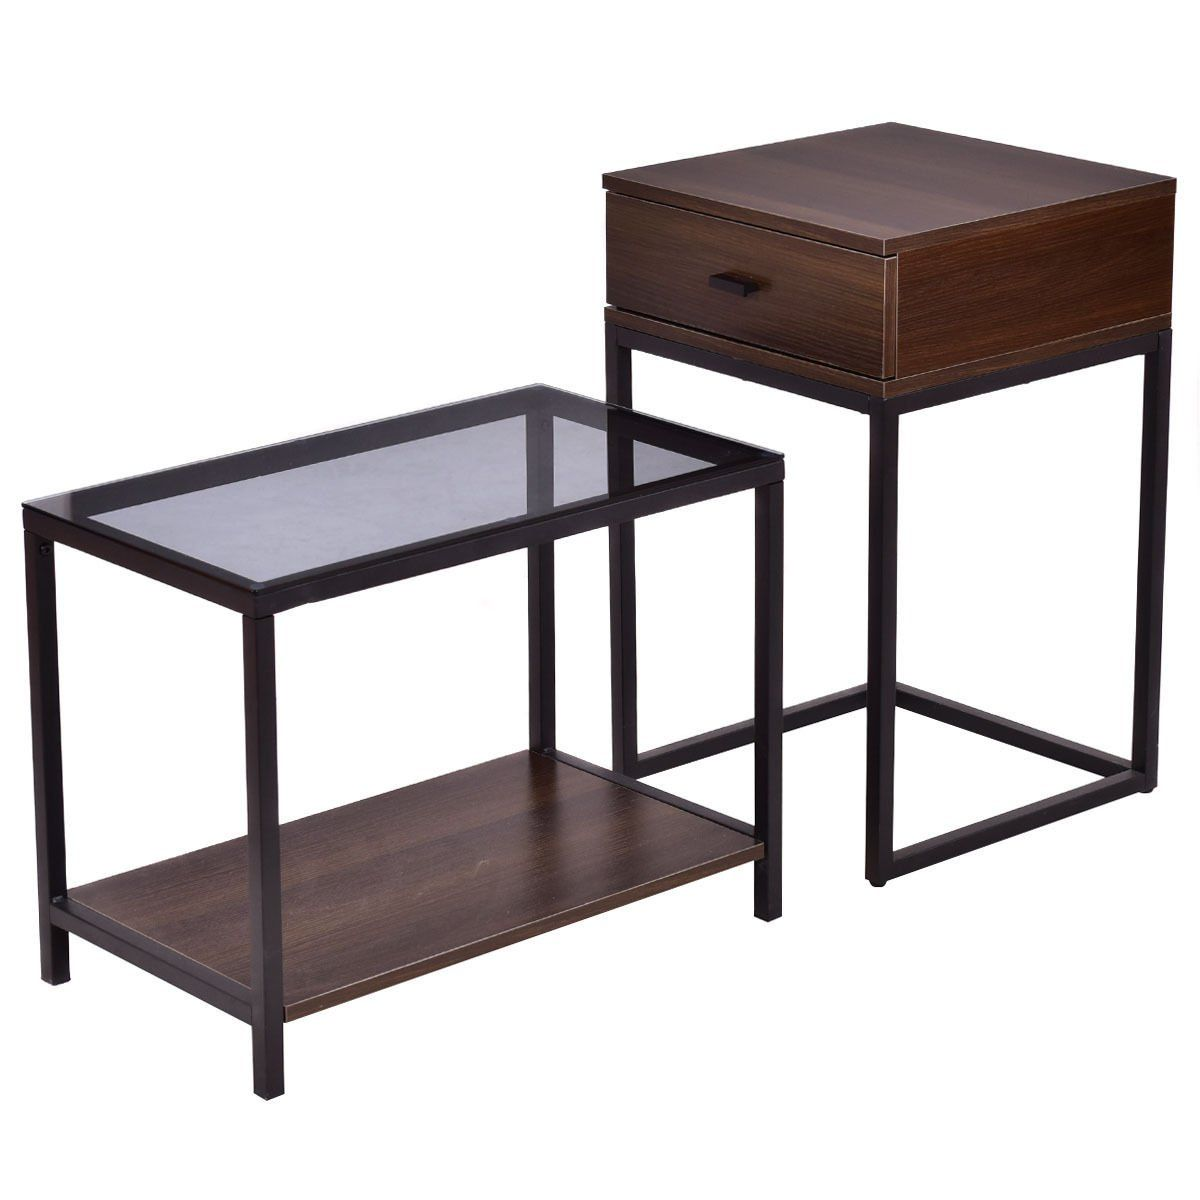 Tangkula Nesting Table Set Of 2 Home Glass Top Metal Frame Sofa Side End Coffee Table Accent Table You Coffee Table Coffee Table Metal Frame Side Table Wood [ 1200 x 1200 Pixel ]